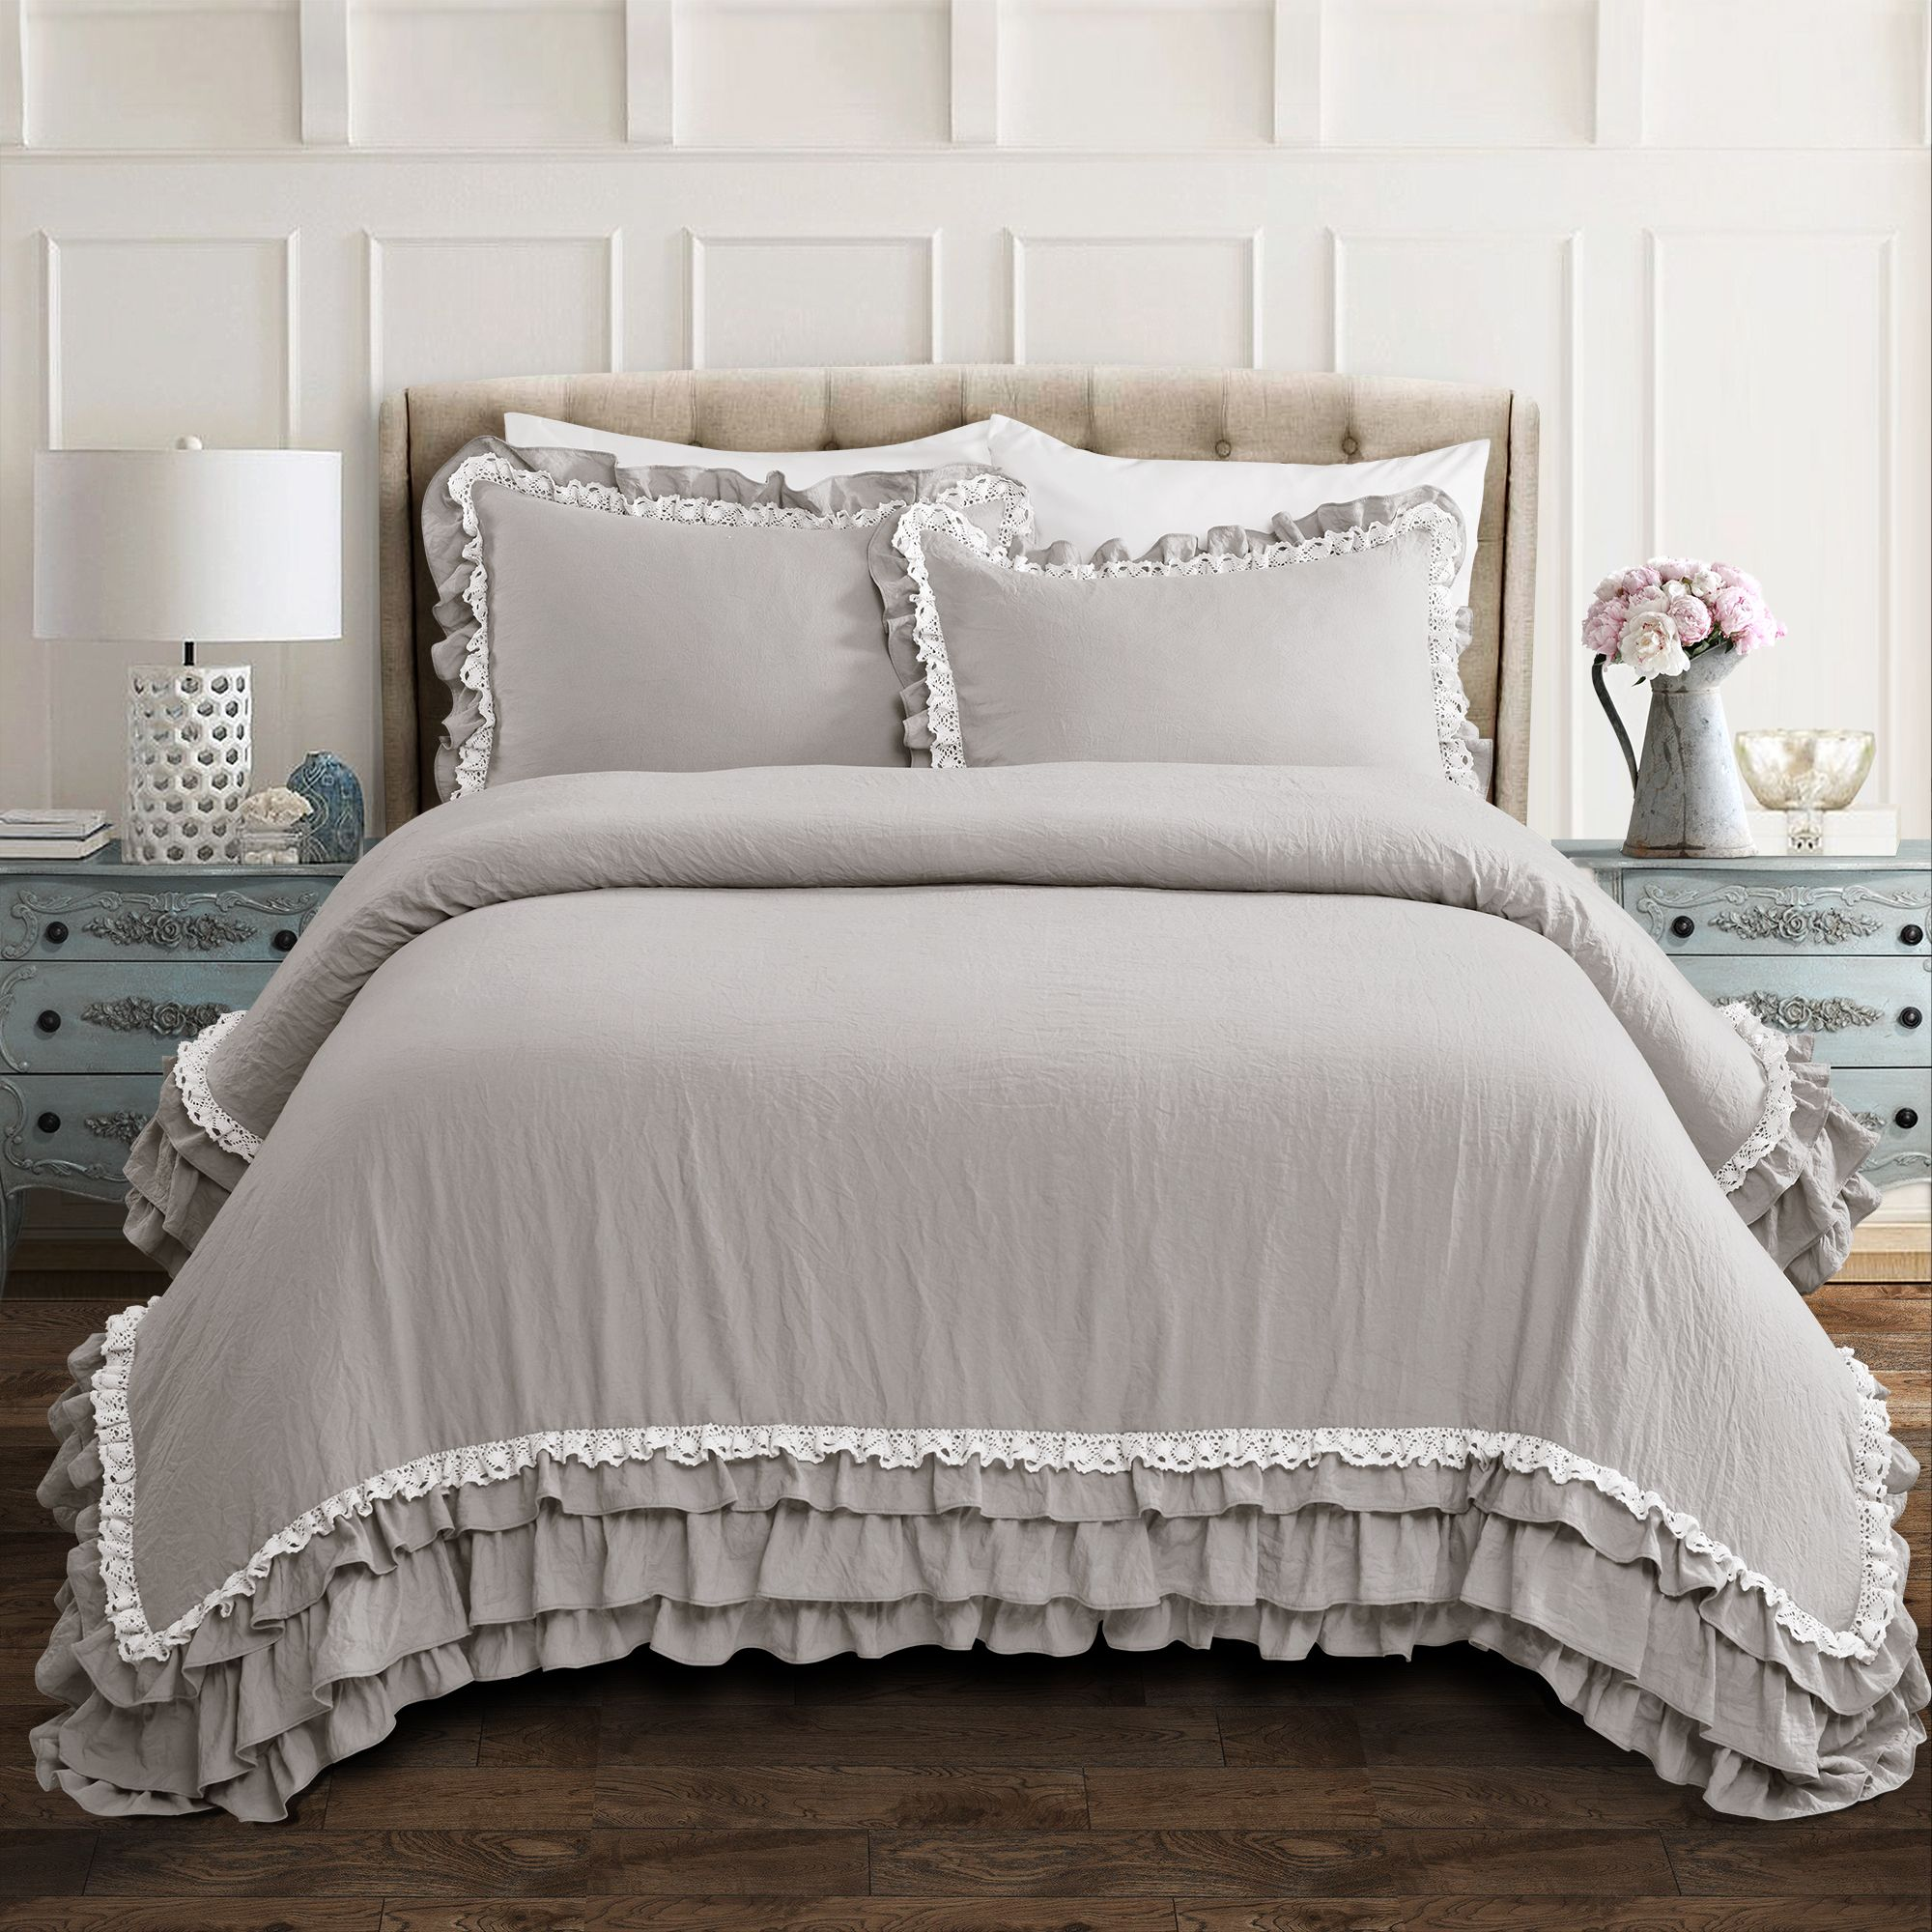 Ella Shabby Chic Ruffle Lace 3 Piece Comforter Set Lush Bedrooms